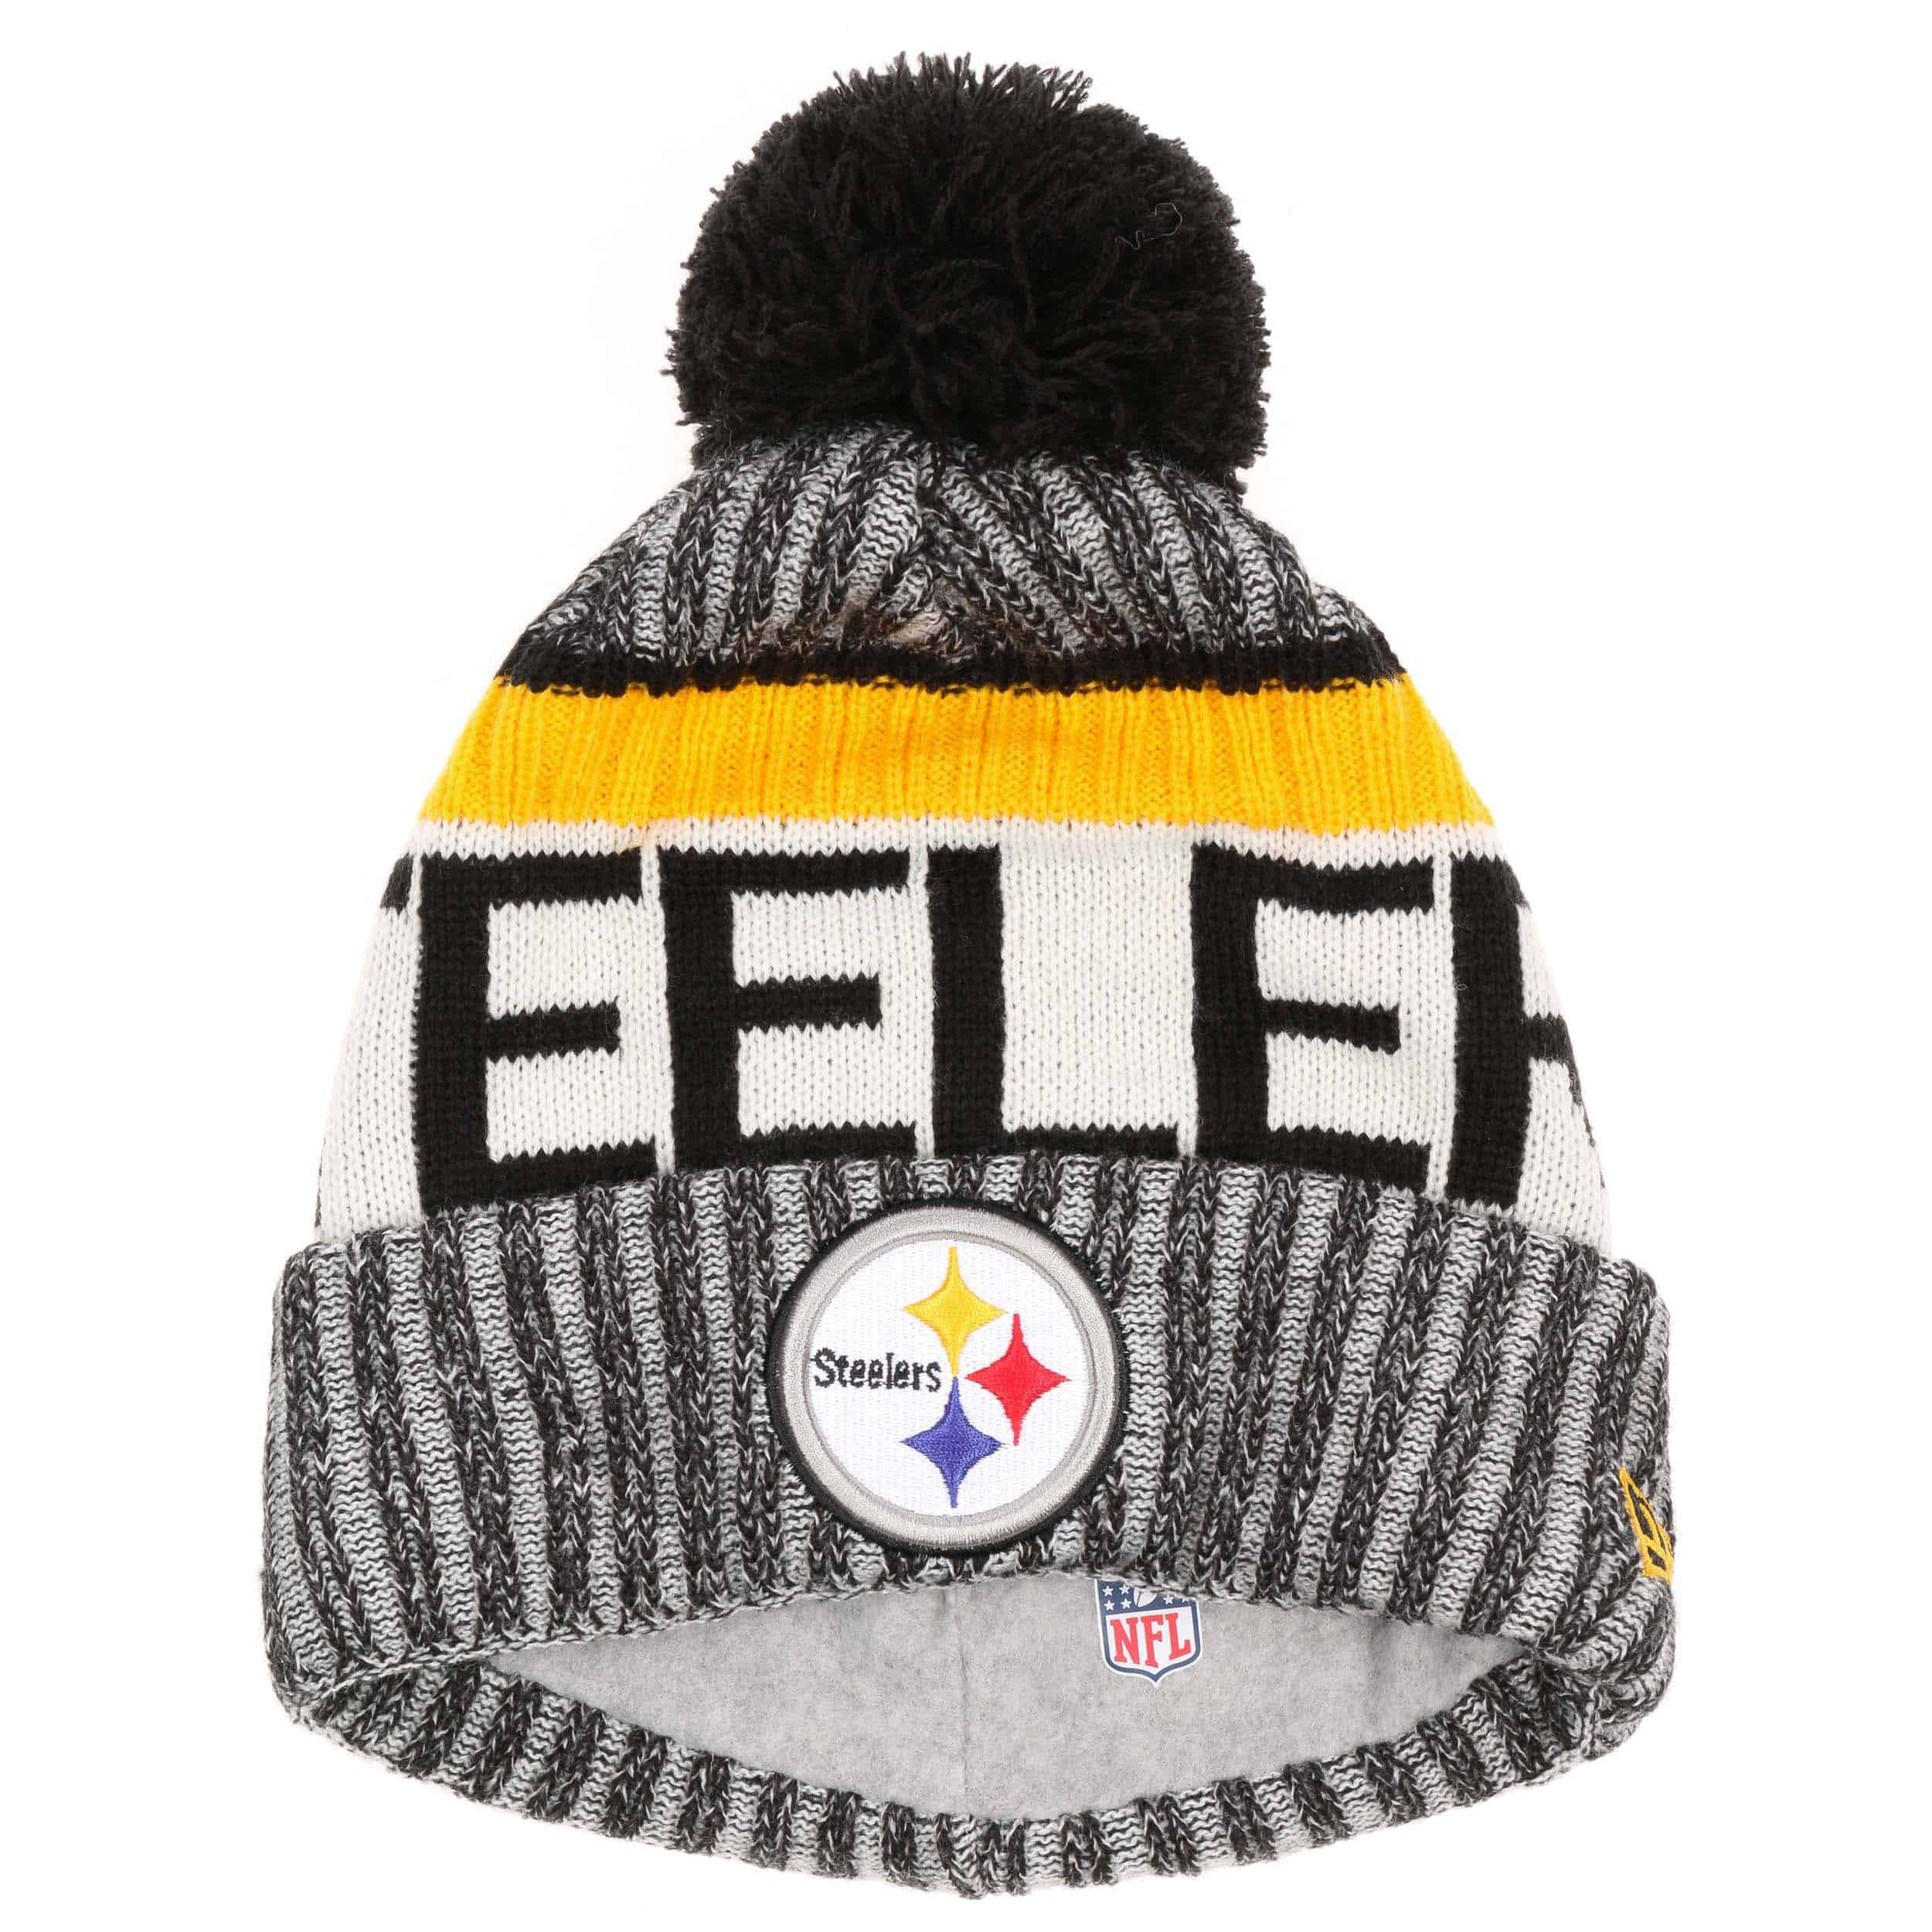 NFL Steelers Beanie by New Era - black 1 ... 4422397aa83